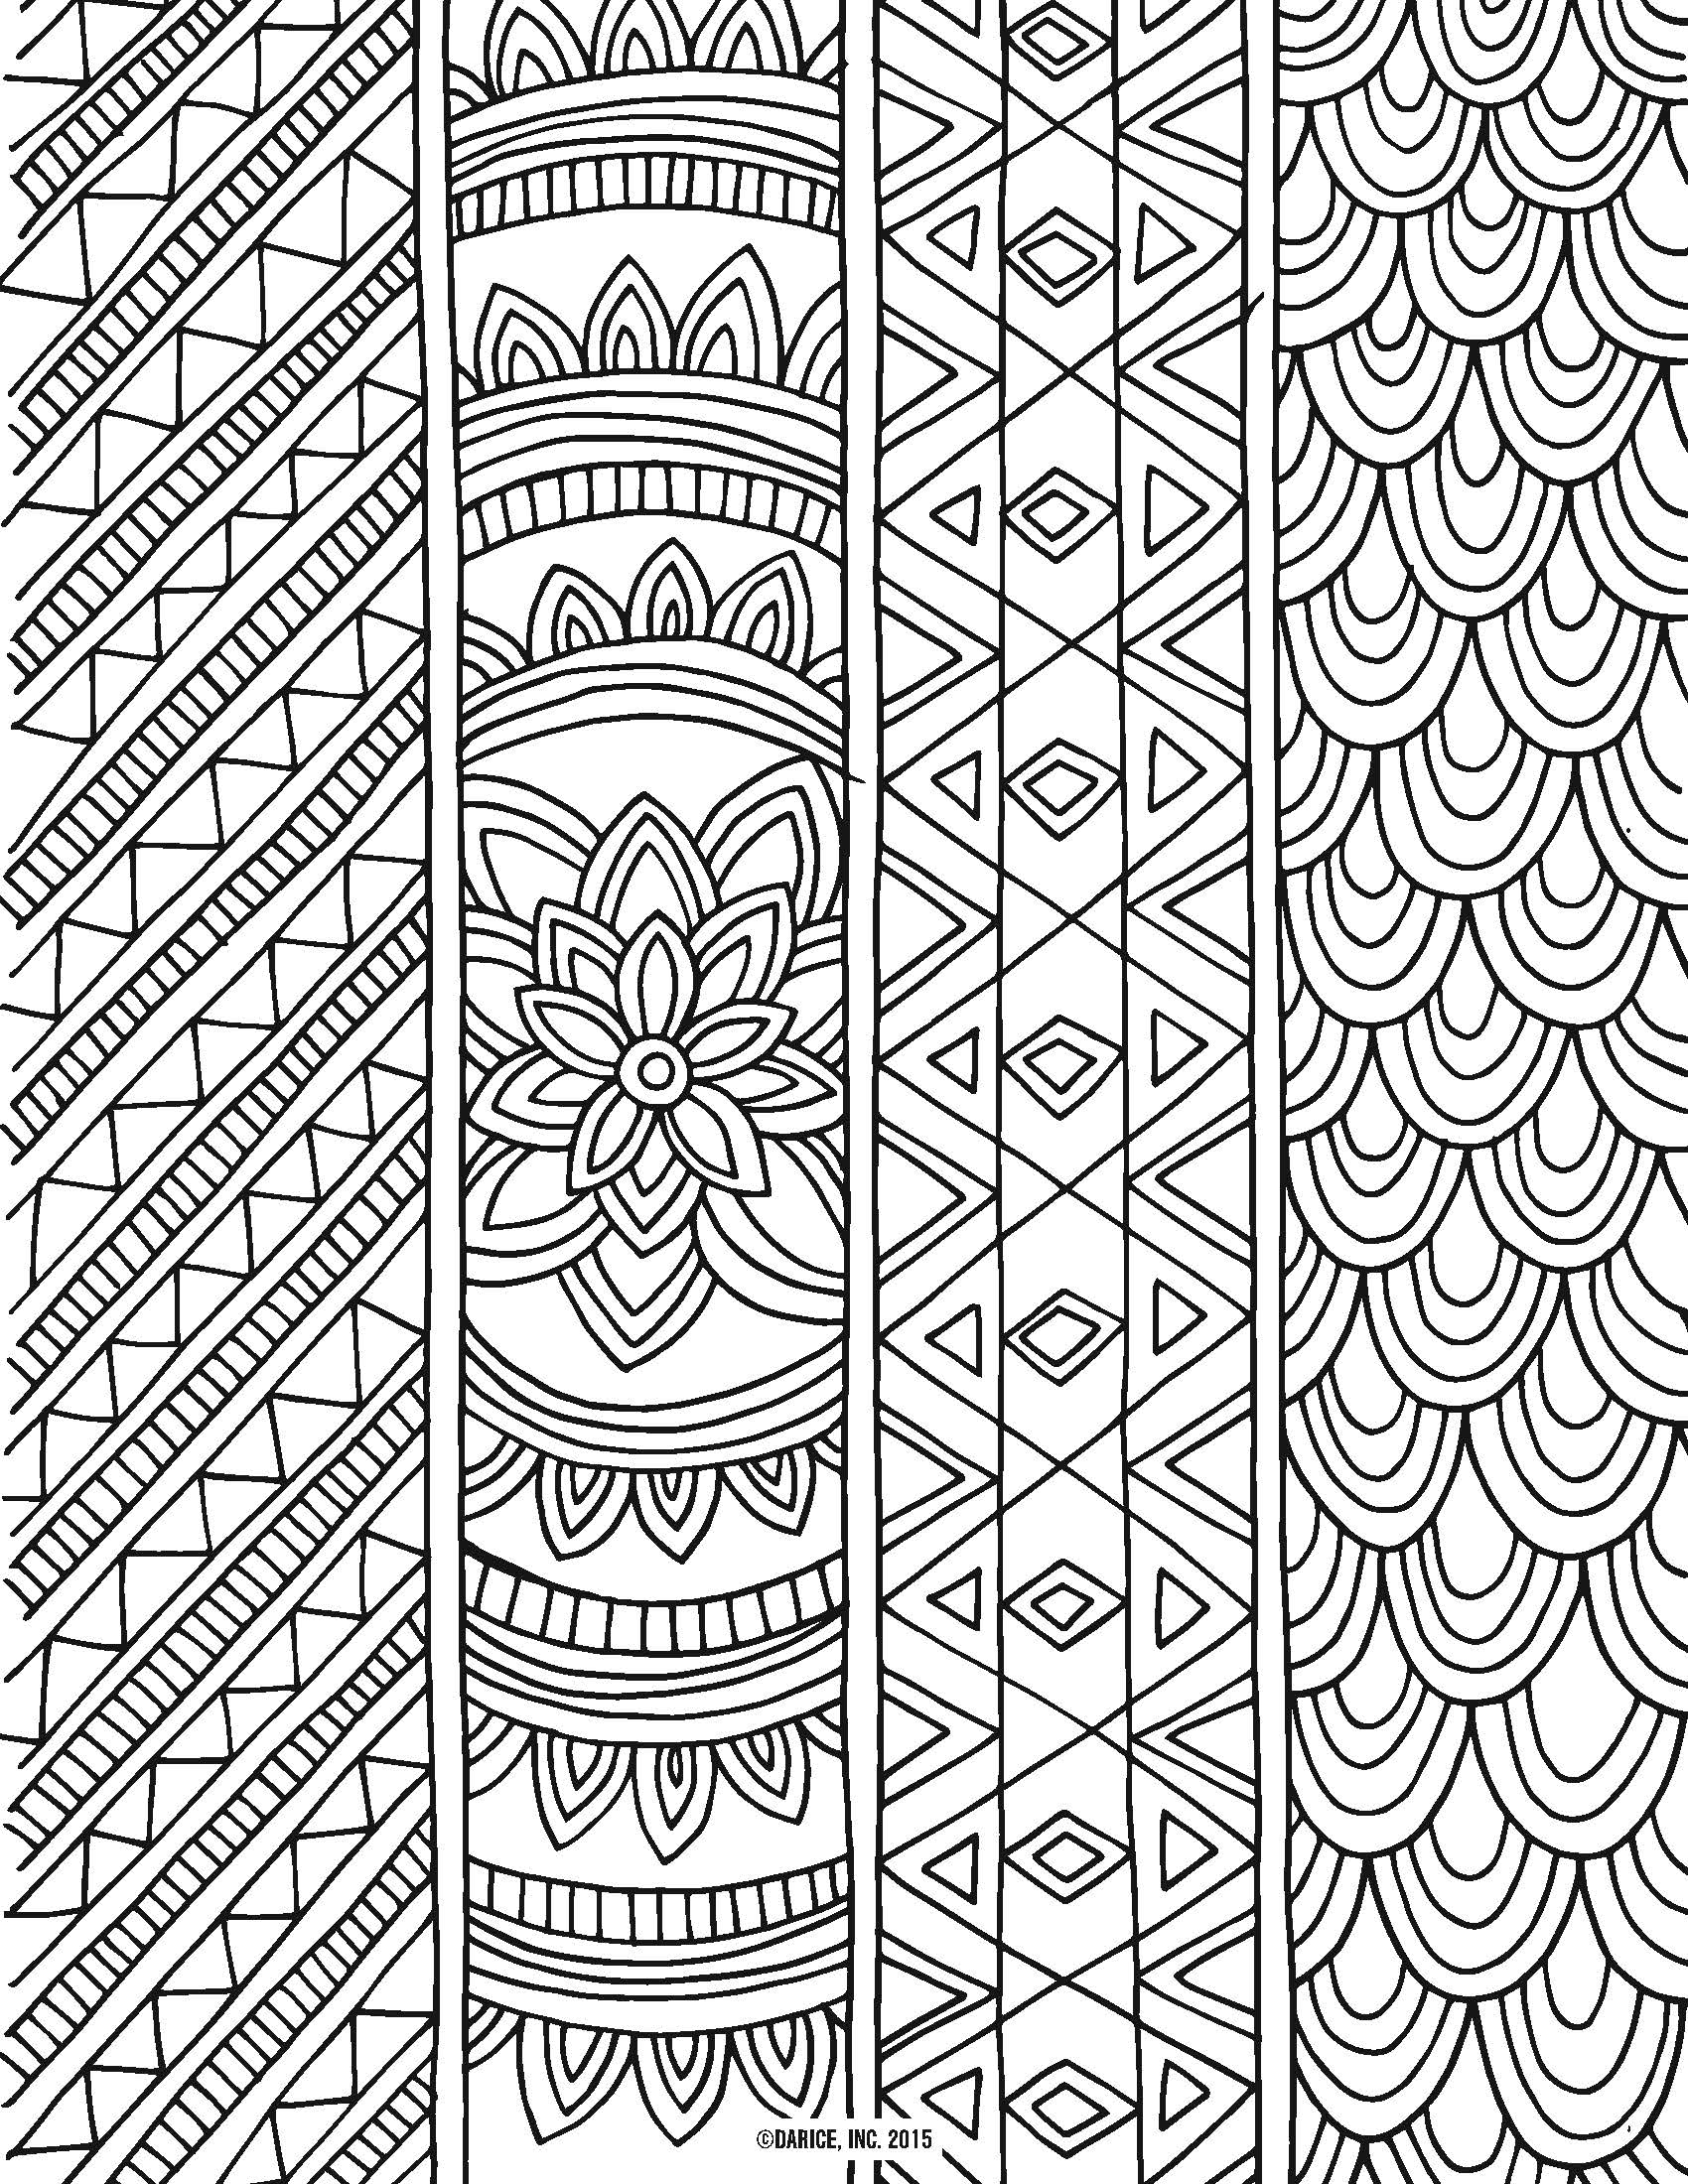 It's just a picture of Massif Free Printable Adult Coloring Pages Quotes